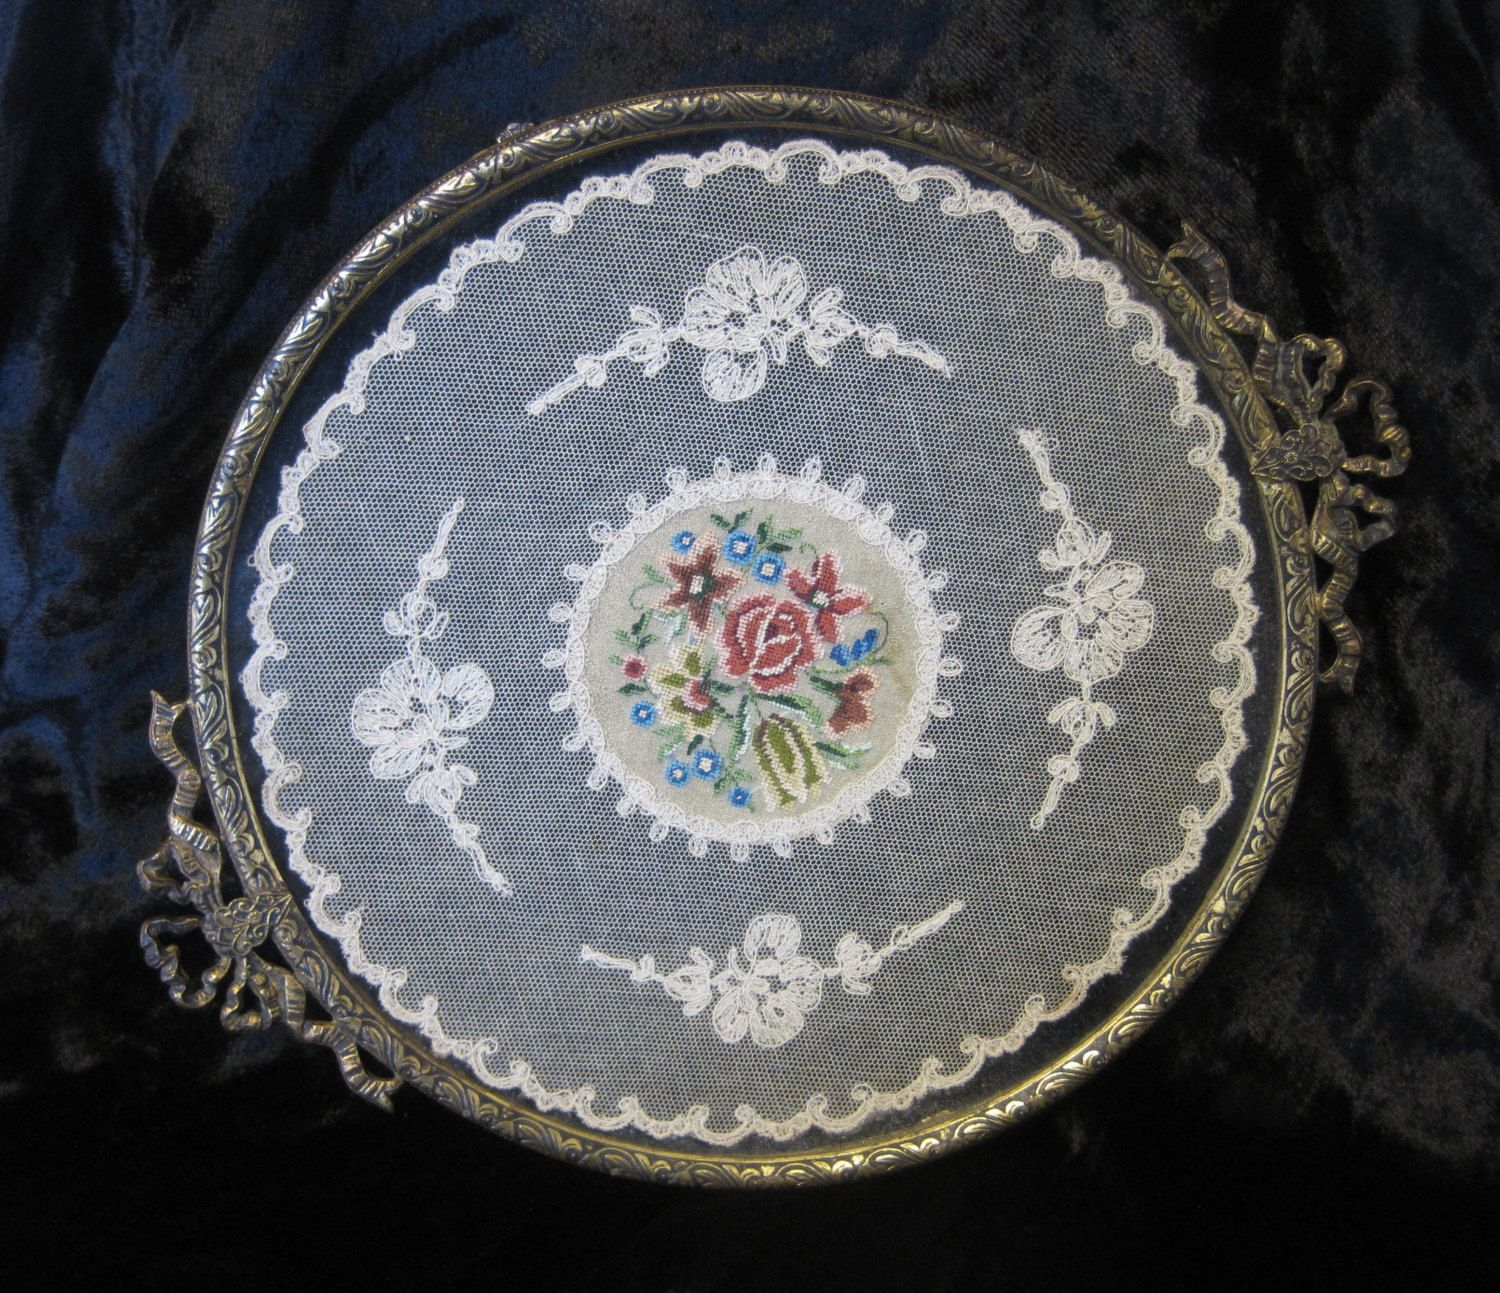 Antique vanity tray with lace insert - Circular Dressing Table Tray With Petit Point Embroidery And Lace Insert Round Petit Point Vanity